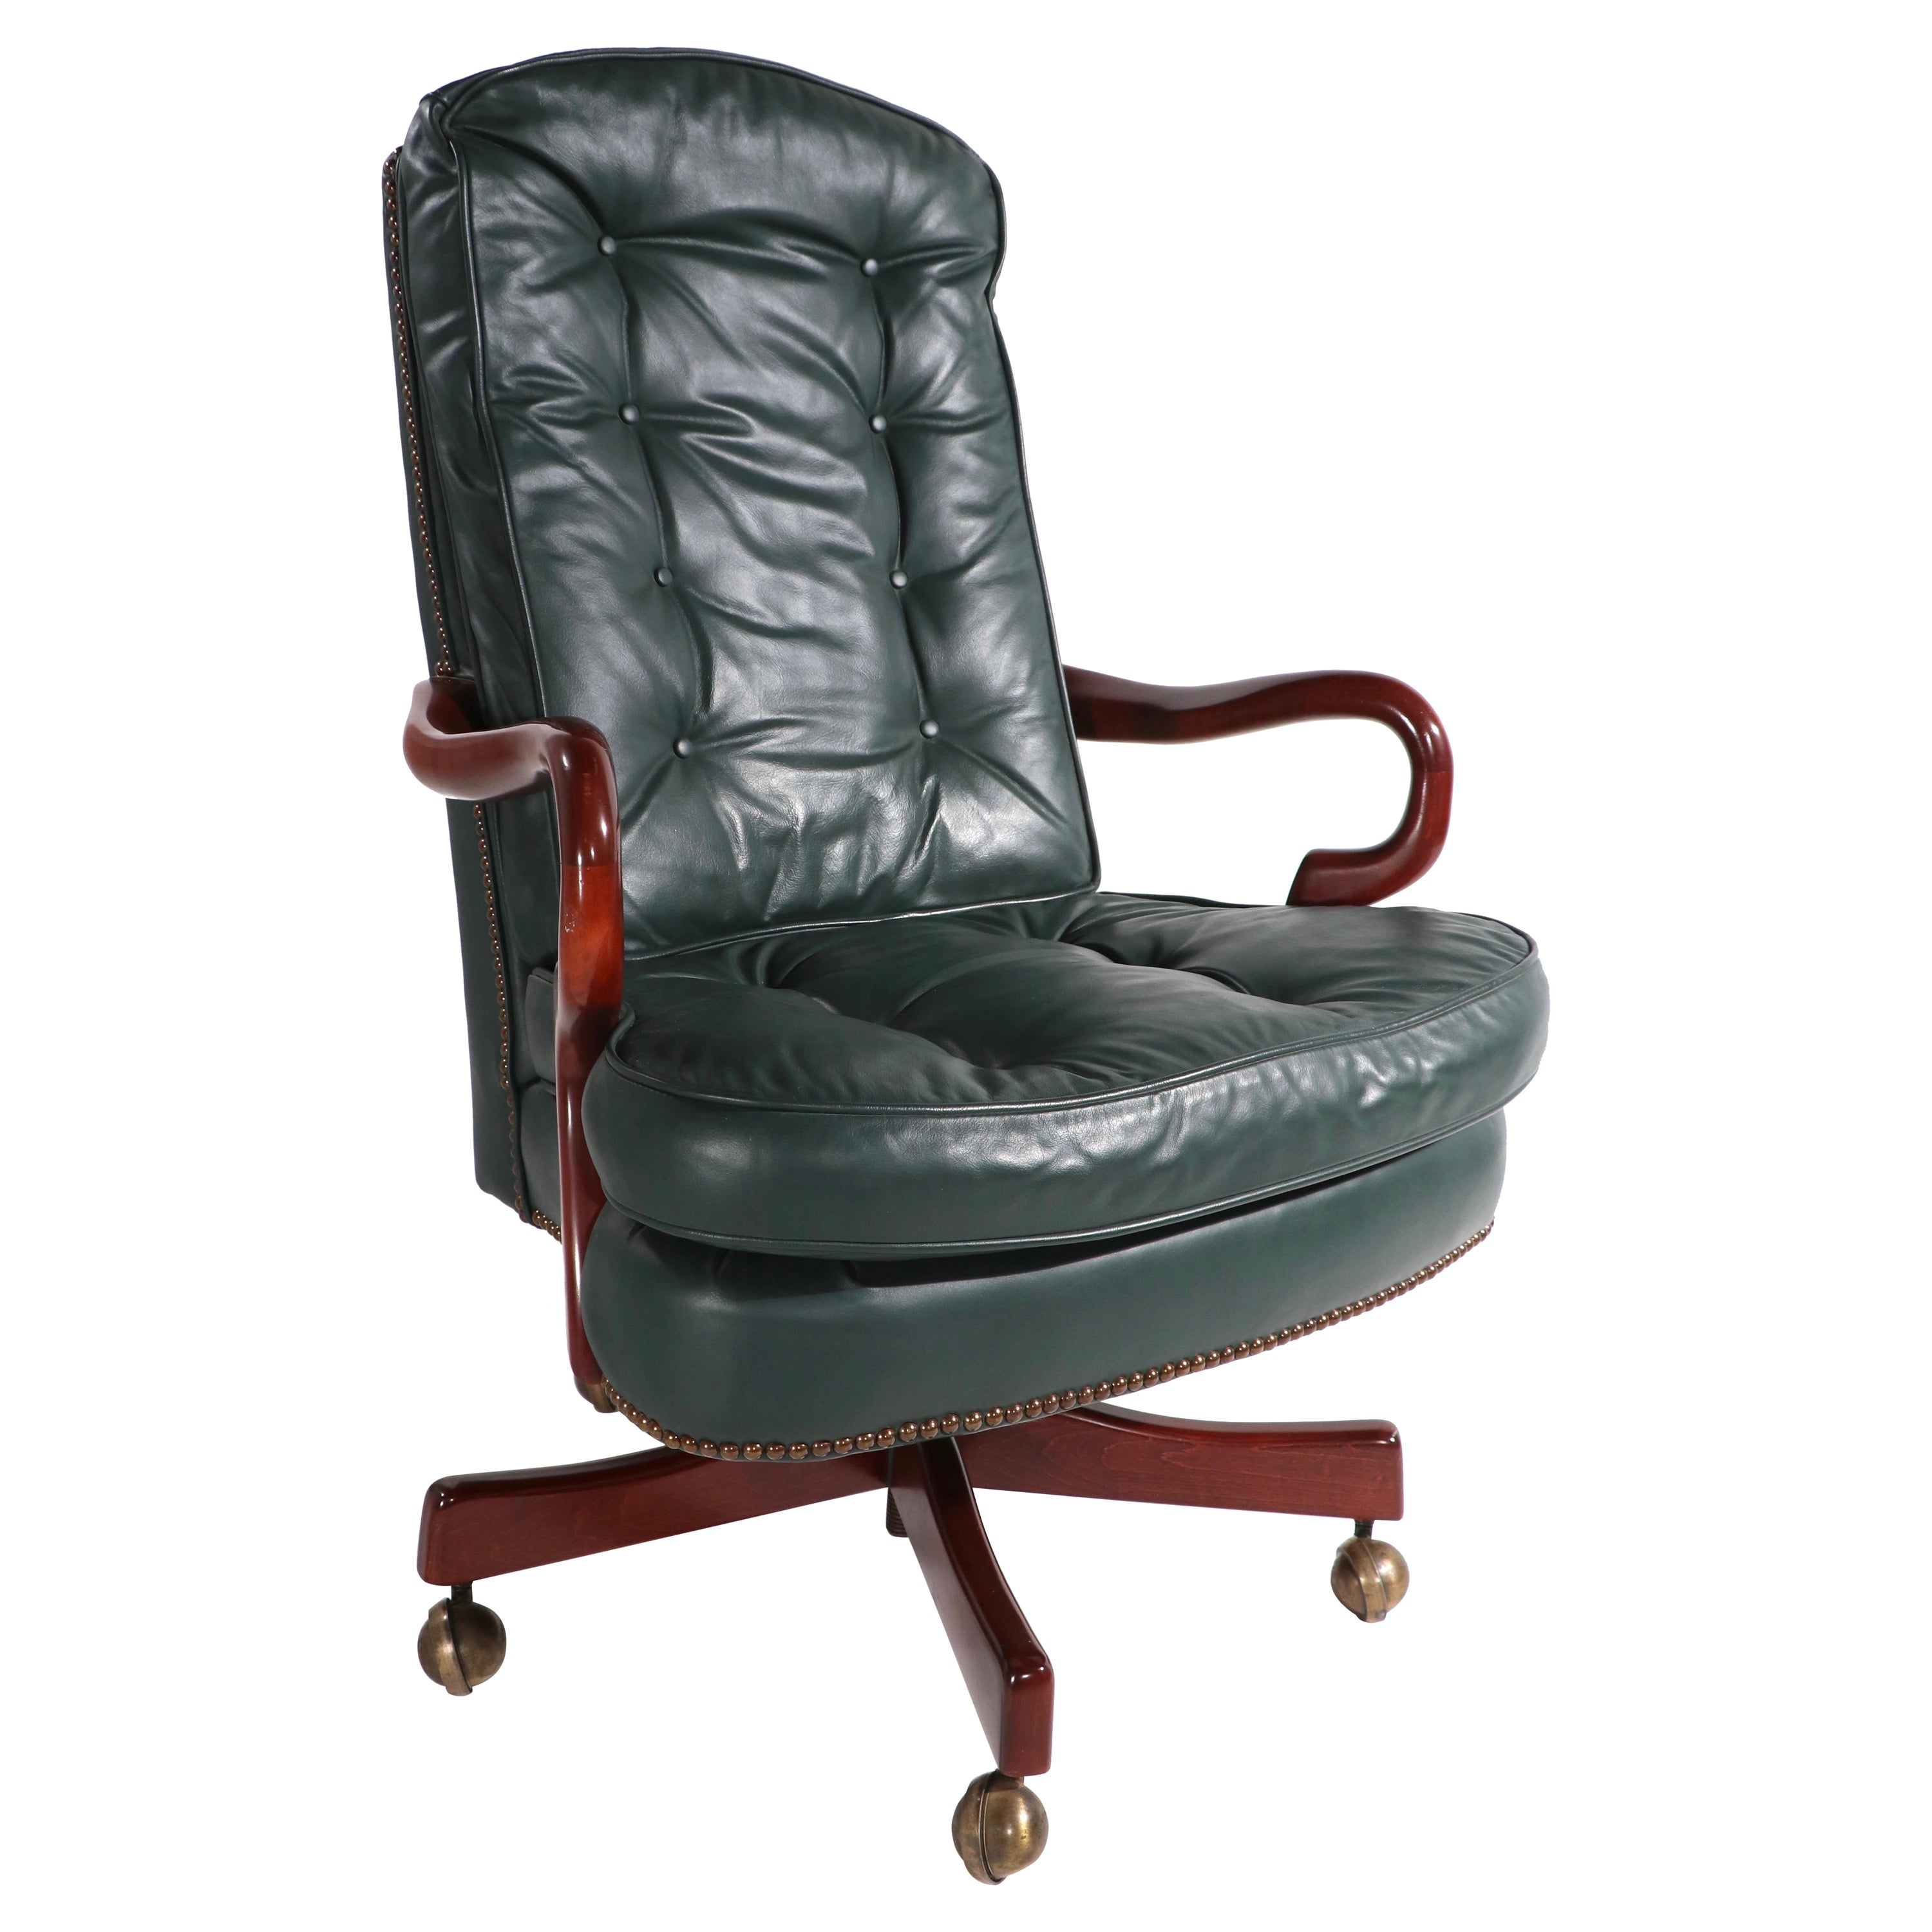 Leather Swivel Tilt Office Chair by Classic Leather Furniture Co.